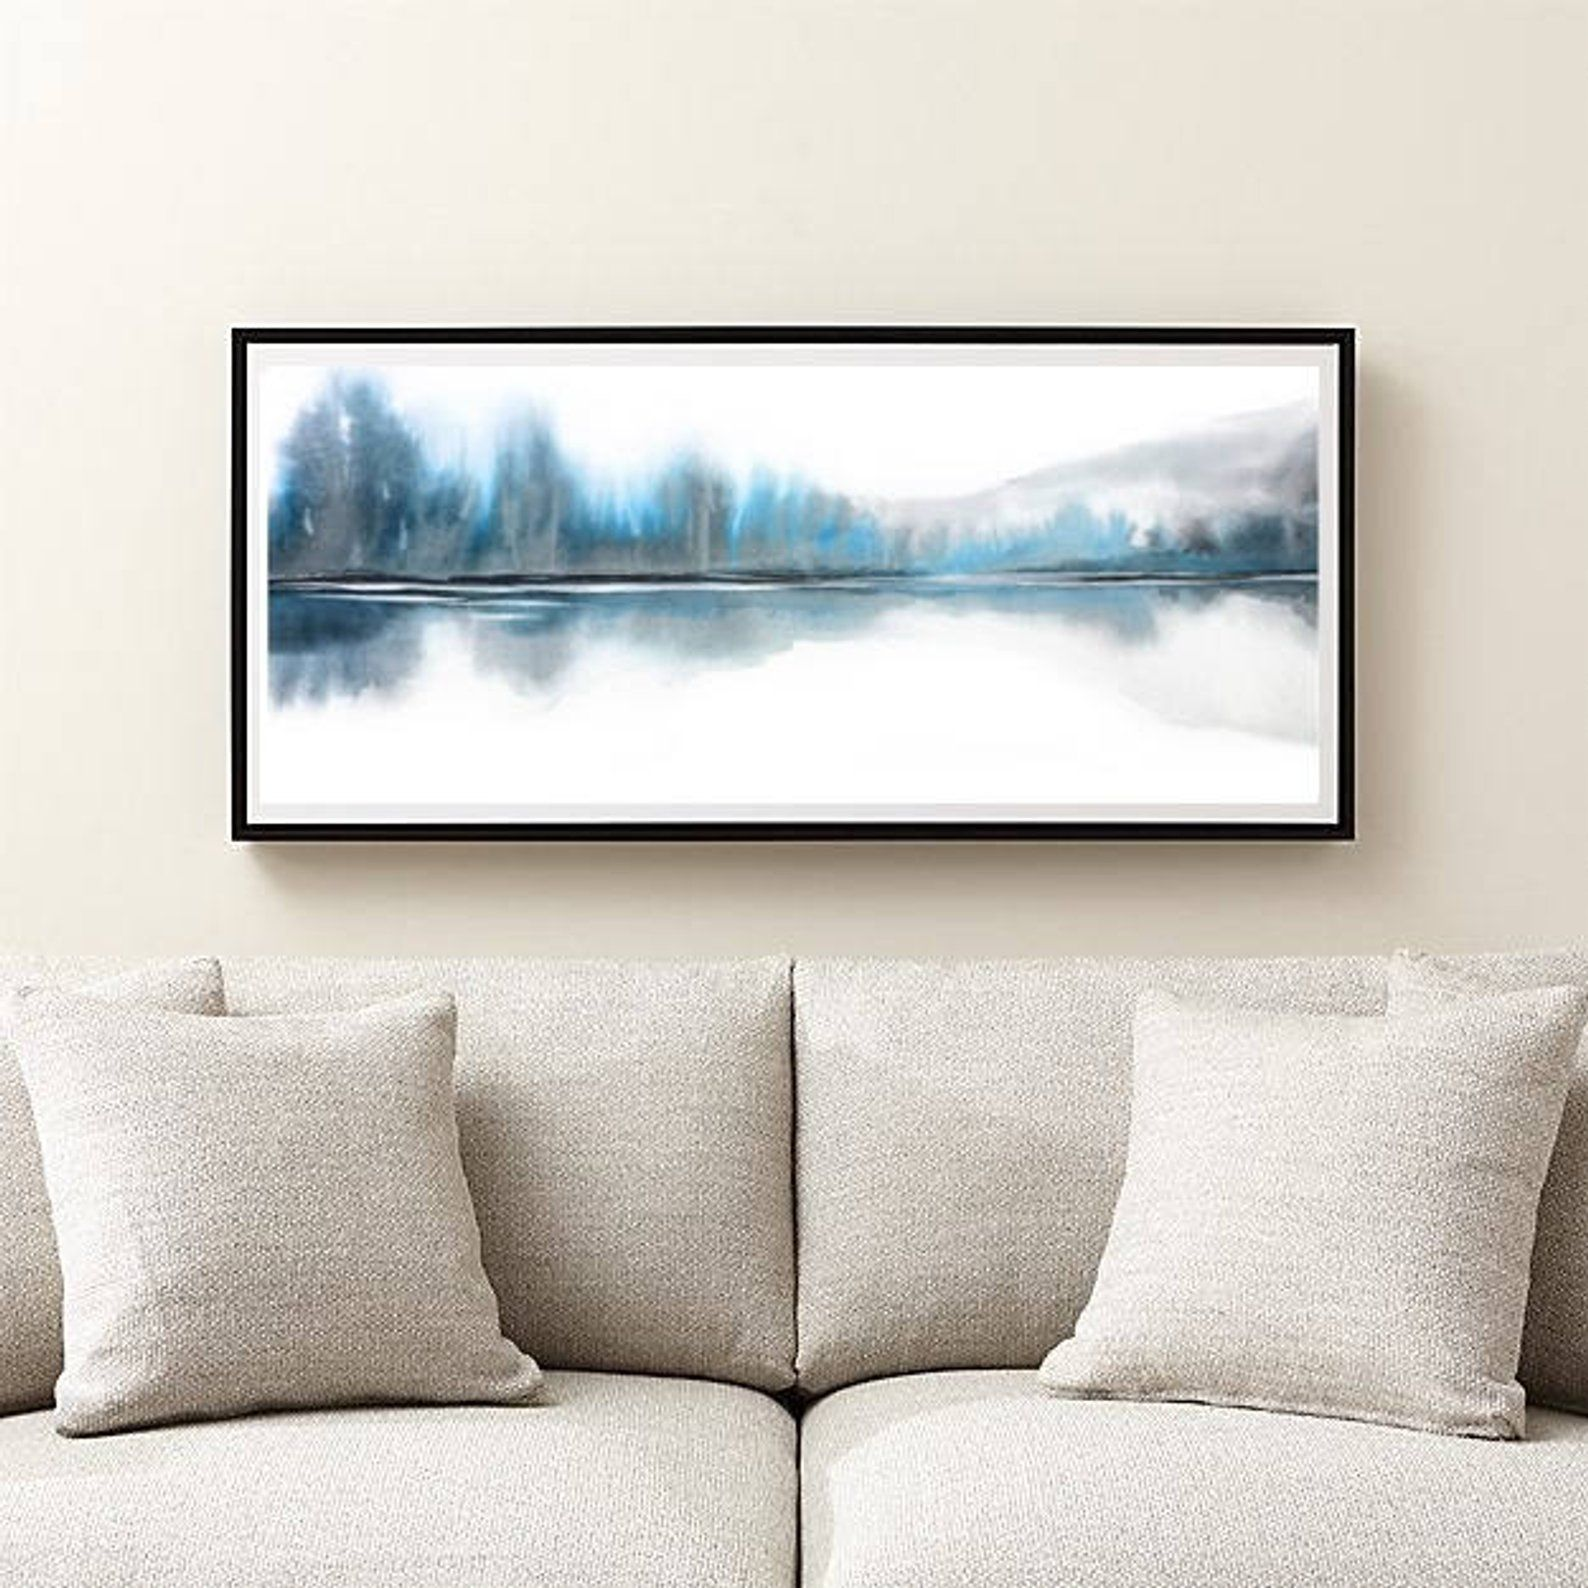 Extra Large Wall Art Teal Blue Grey White Horizontal Etsy Extra Large Wall Art Horizontal Wall Art Large Wall Art